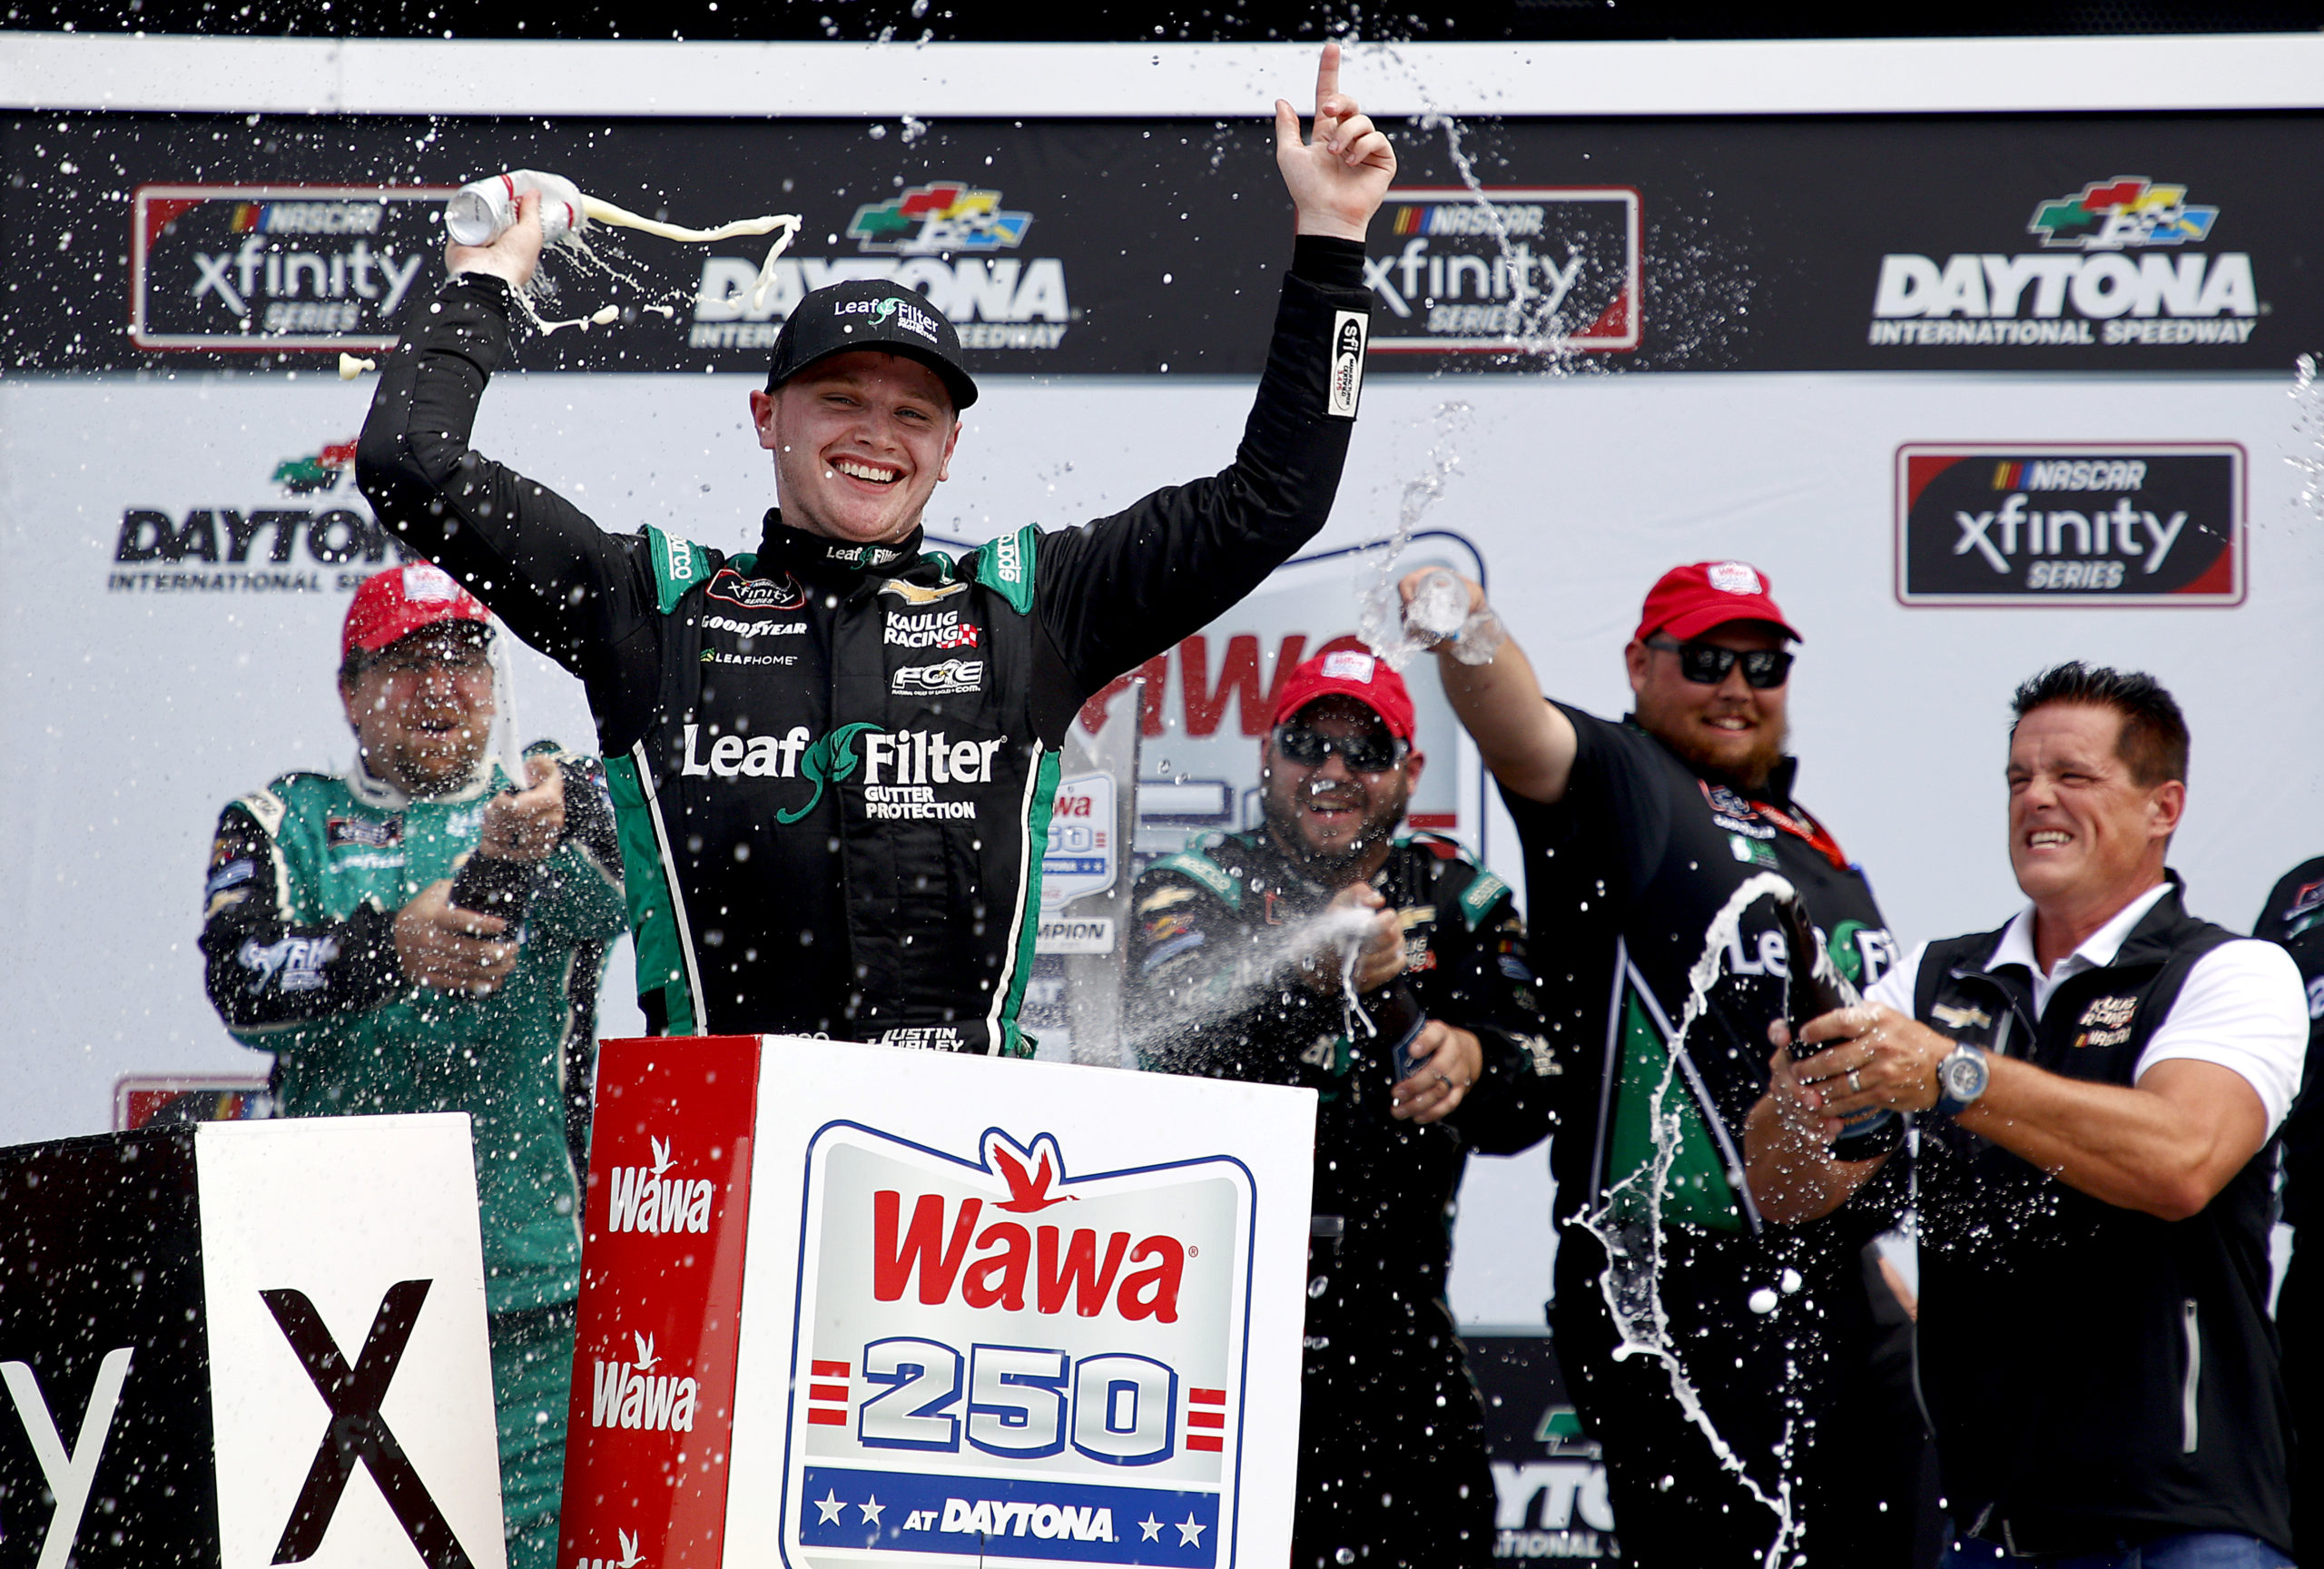 Kaulig Conquers Daytona Again with Haley Victory